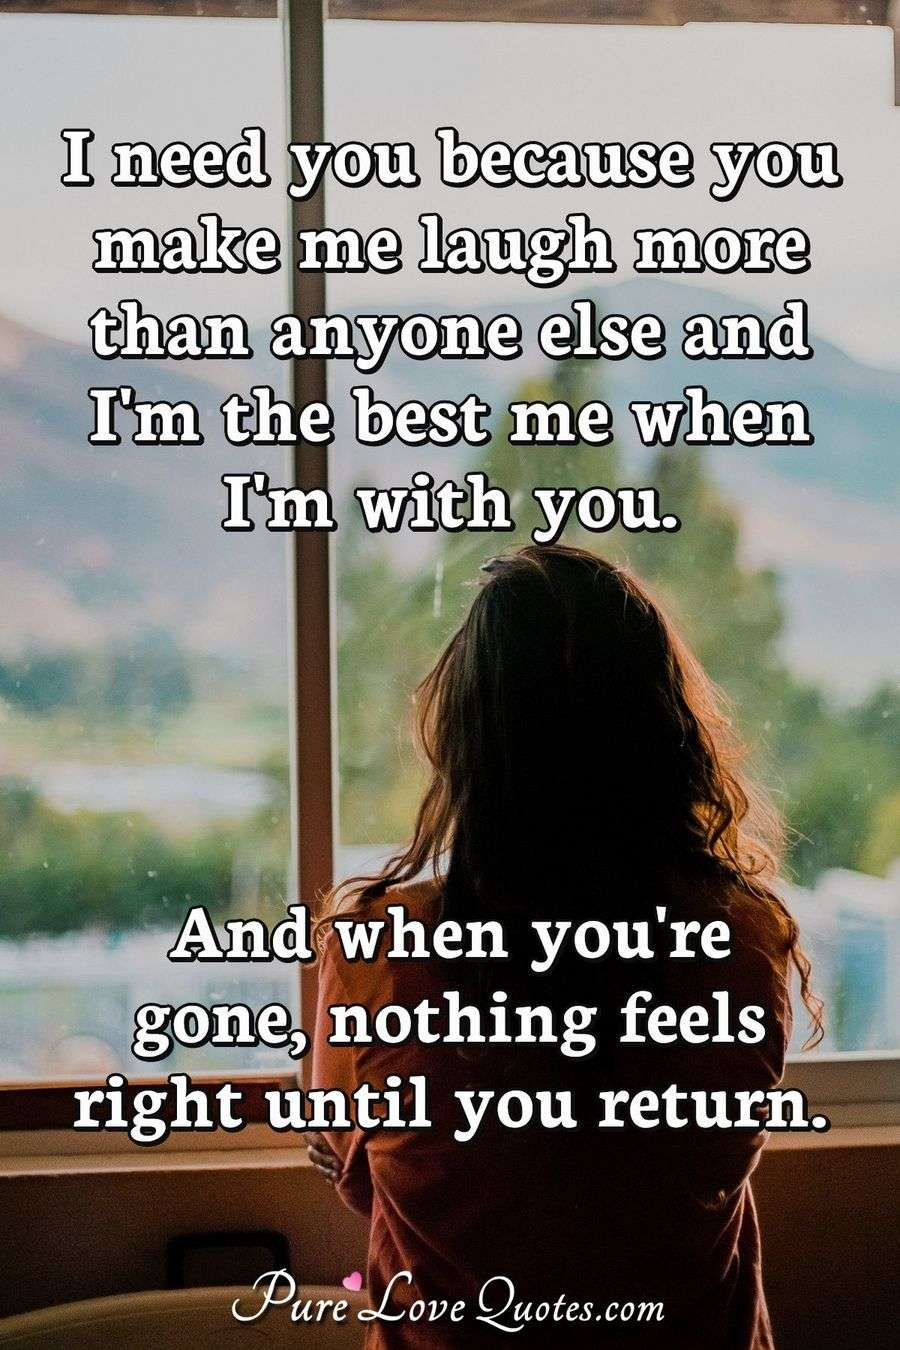 I need you because you make me laugh more than anyone else and I'm the best me when I'm with you. And when you're gone, nothing feels right until you return.